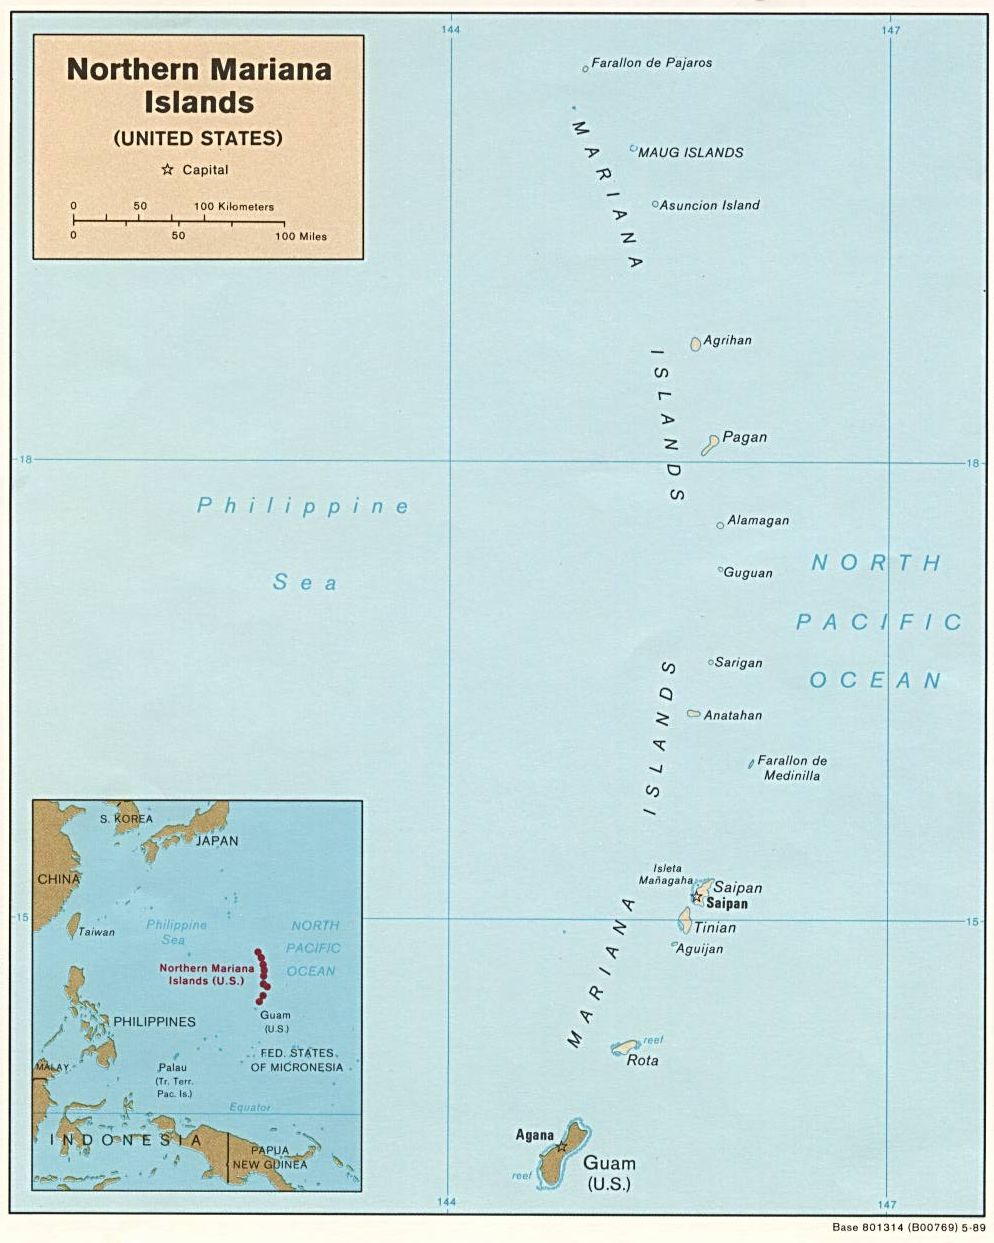 ChamorroBibleorg Map of the Commonwealth of the Northern Mariana